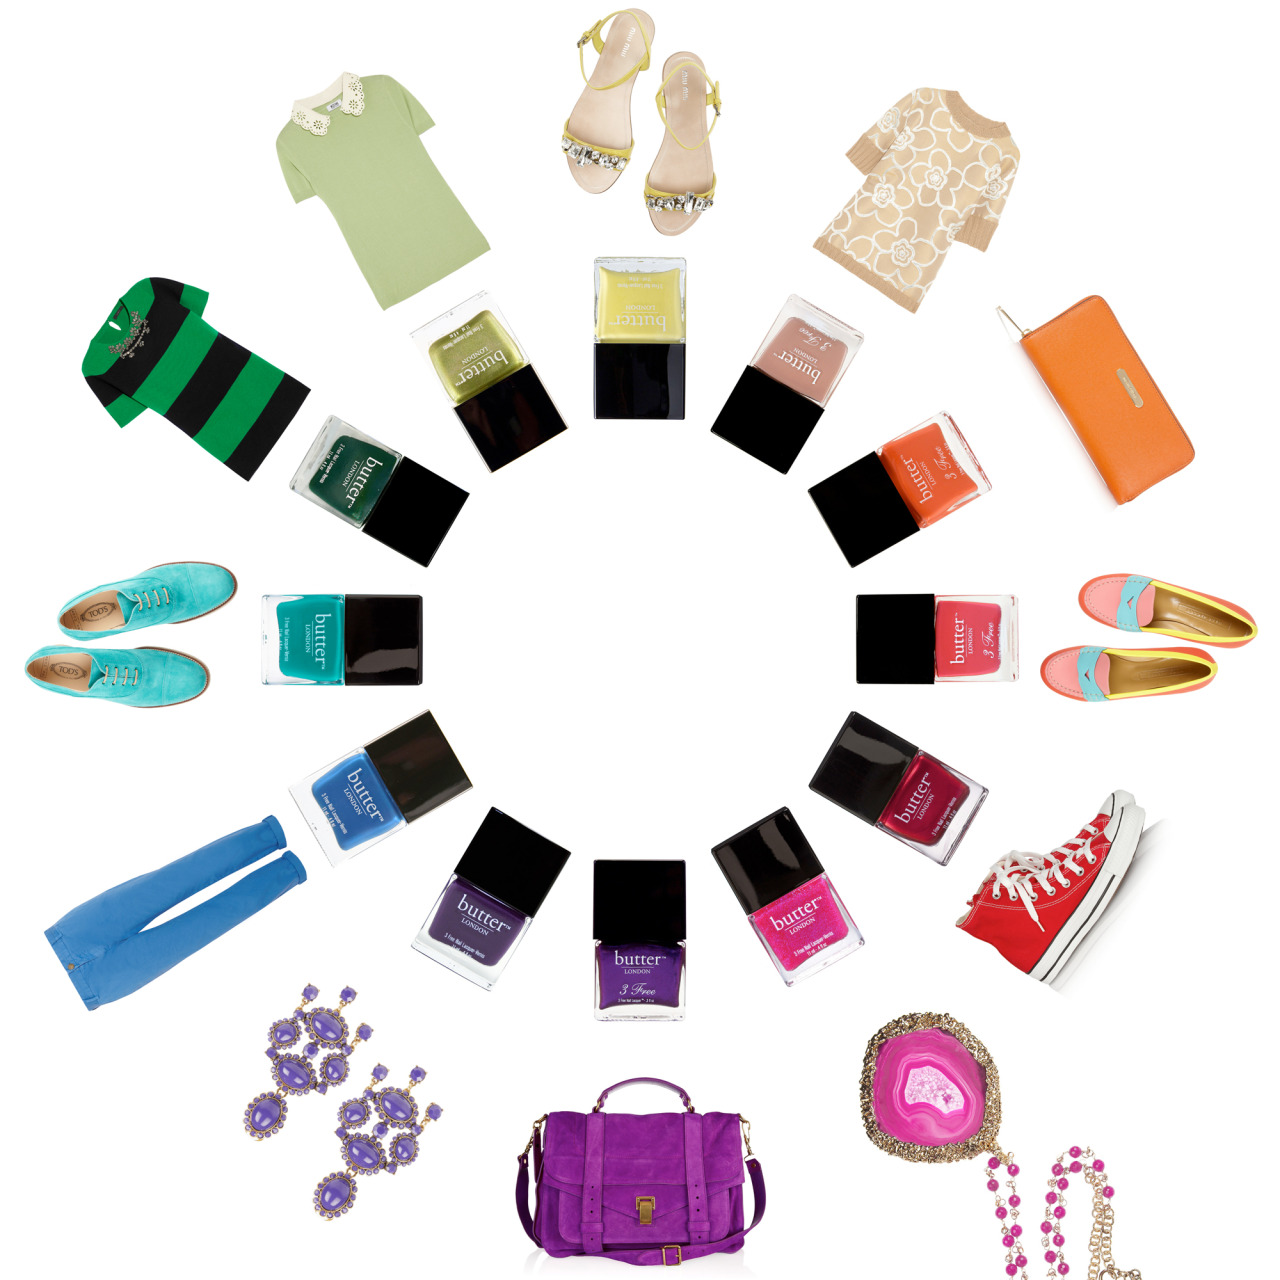 Brush up on your nail polish color theory. You'll never mismatch again.